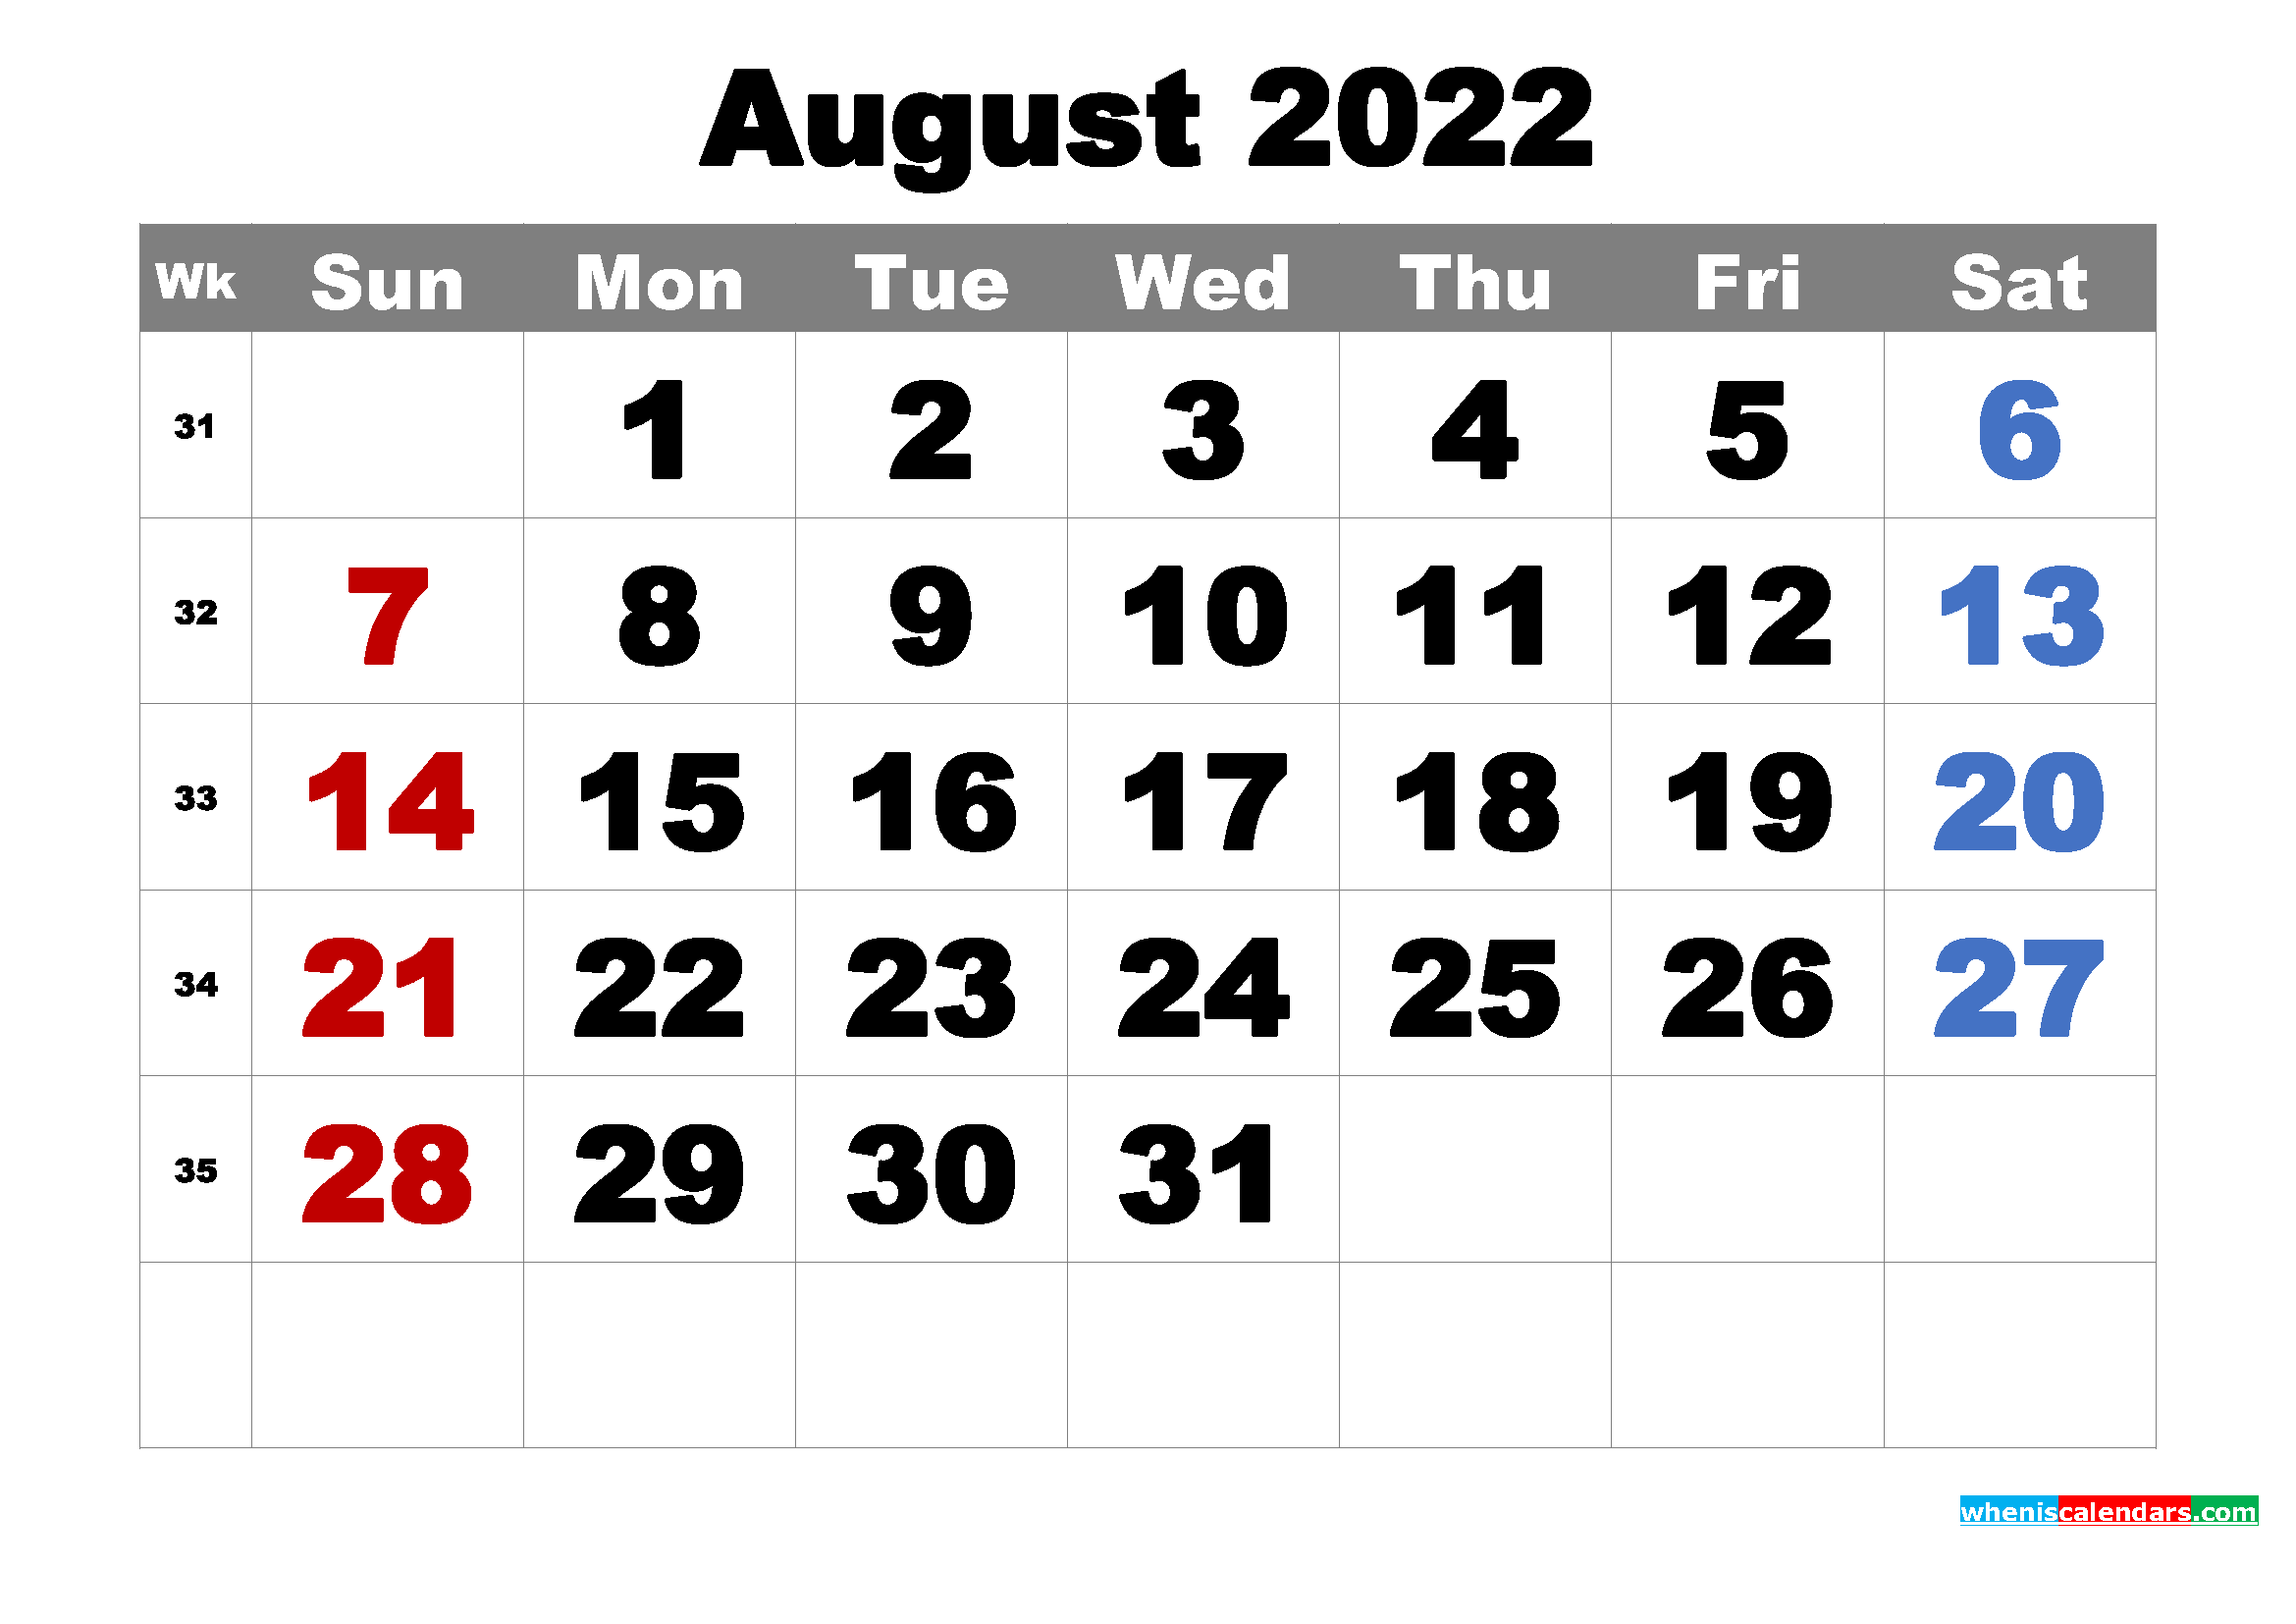 June July August 2022 Calendar Printable.Free Printable August 2022 Calendar Word Pdf Image Free Printable 2021 Monthly Calendar With Holidays